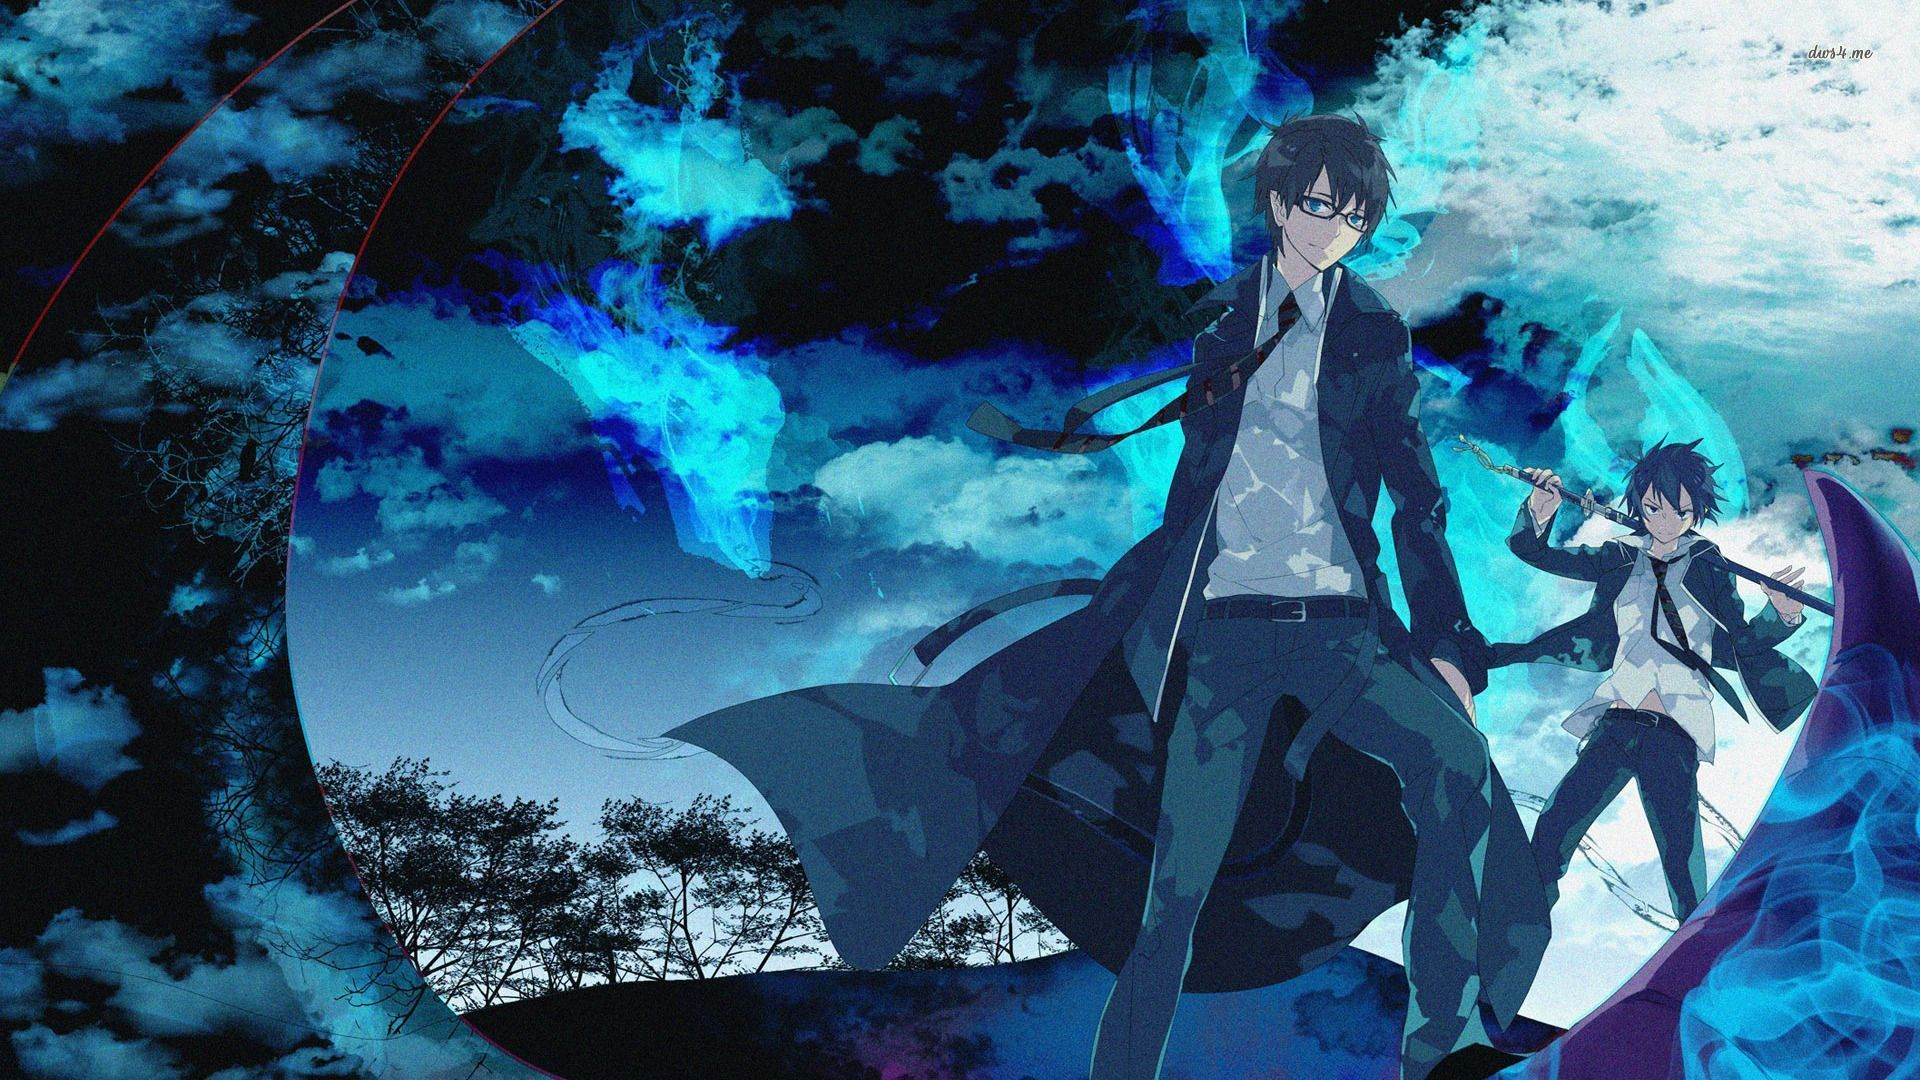 Blue Anime Wallpapers   HD Wallpapers Backgrounds of Your 1920x1080